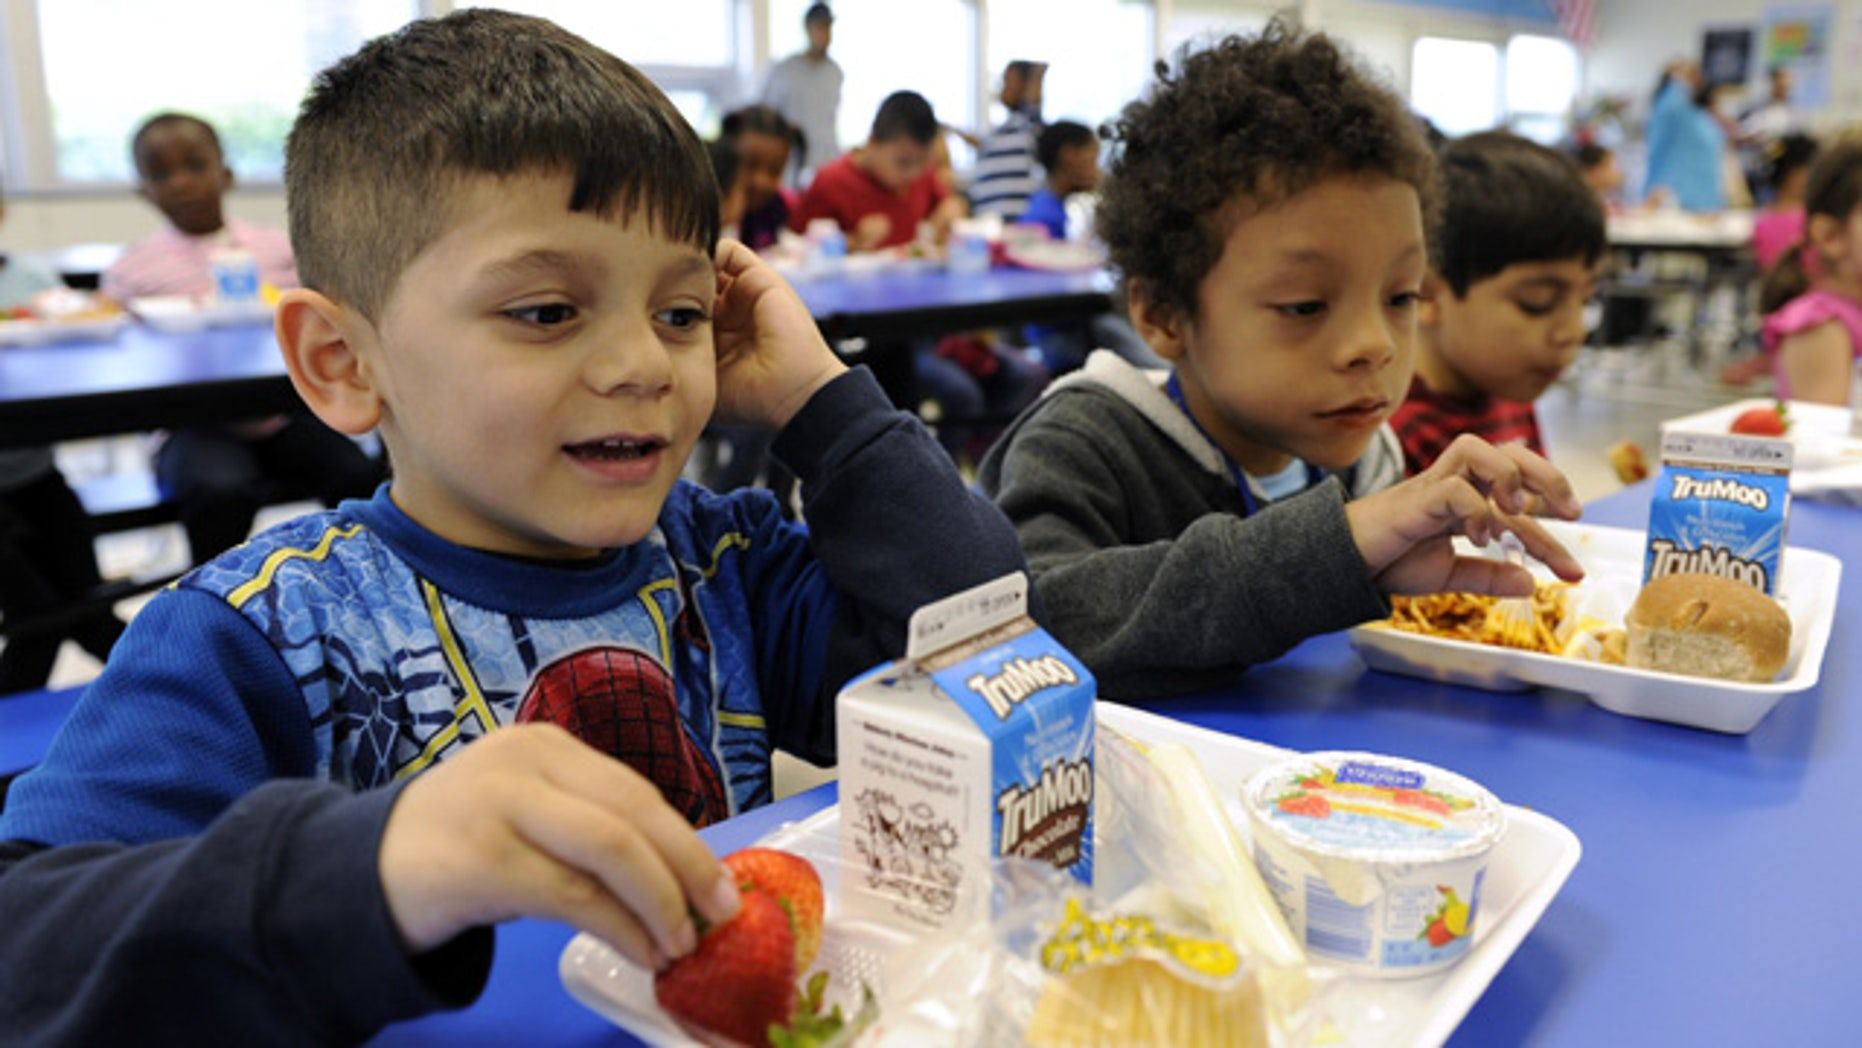 April 29, 2014: Biden Arias-Romers, 5, left, and Nathaniel Cossio-Boatwright, 6, right, eat lunch at the Patrick Henry Elementary School in Alexandria, Va. (AP Photo/Susan Walsh)